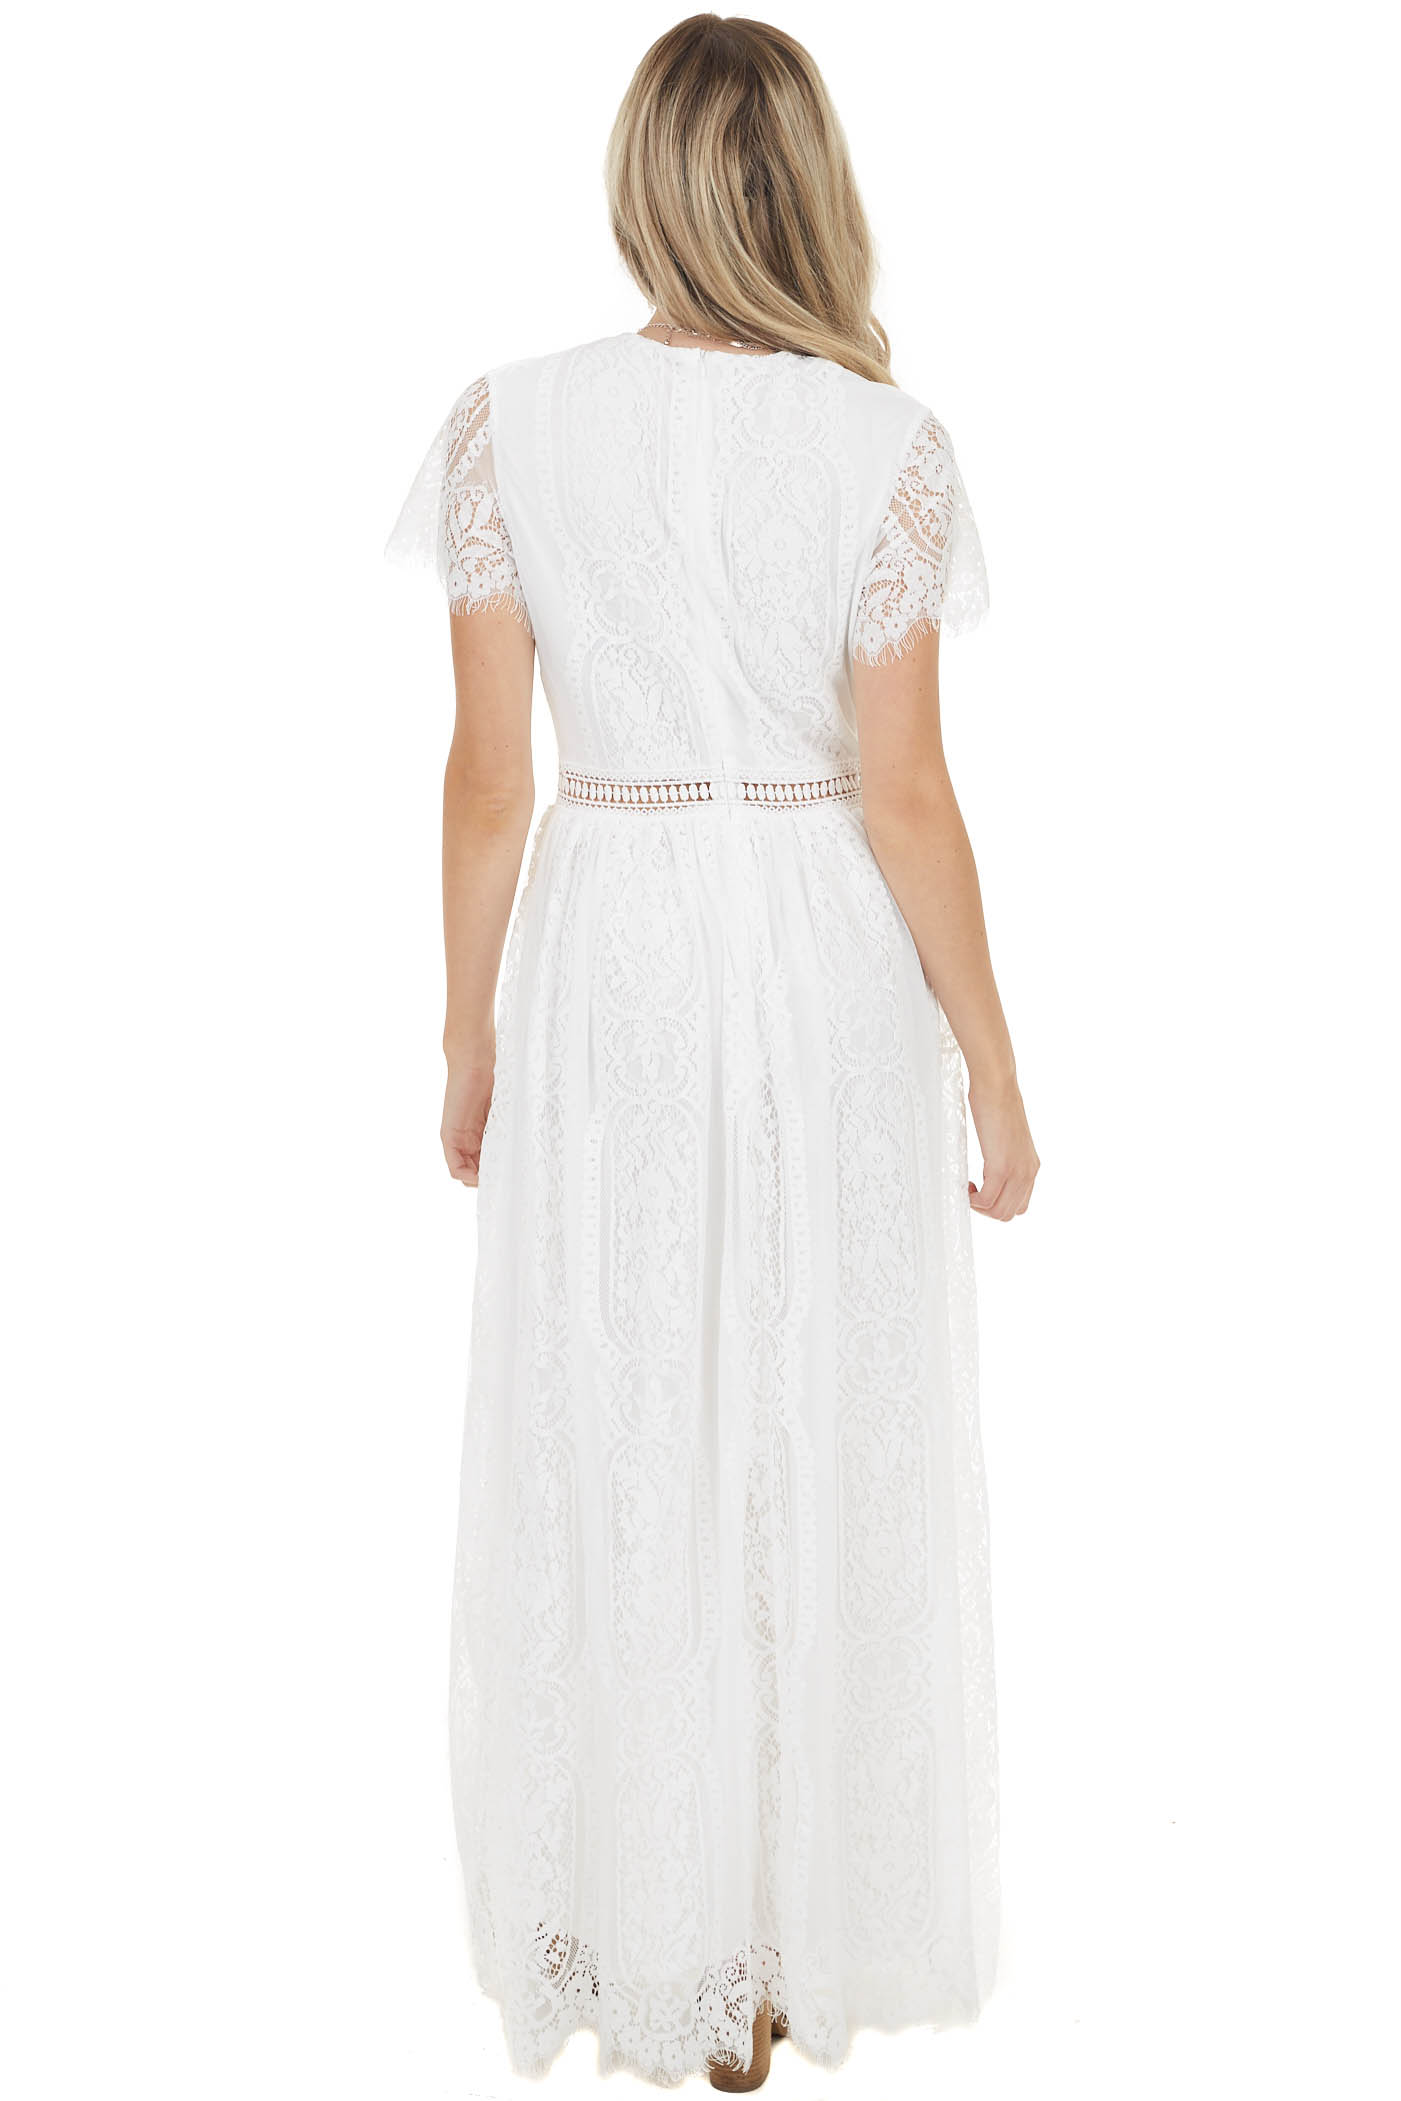 White Crochet Lace Maxi Dress with Peekaboo Details